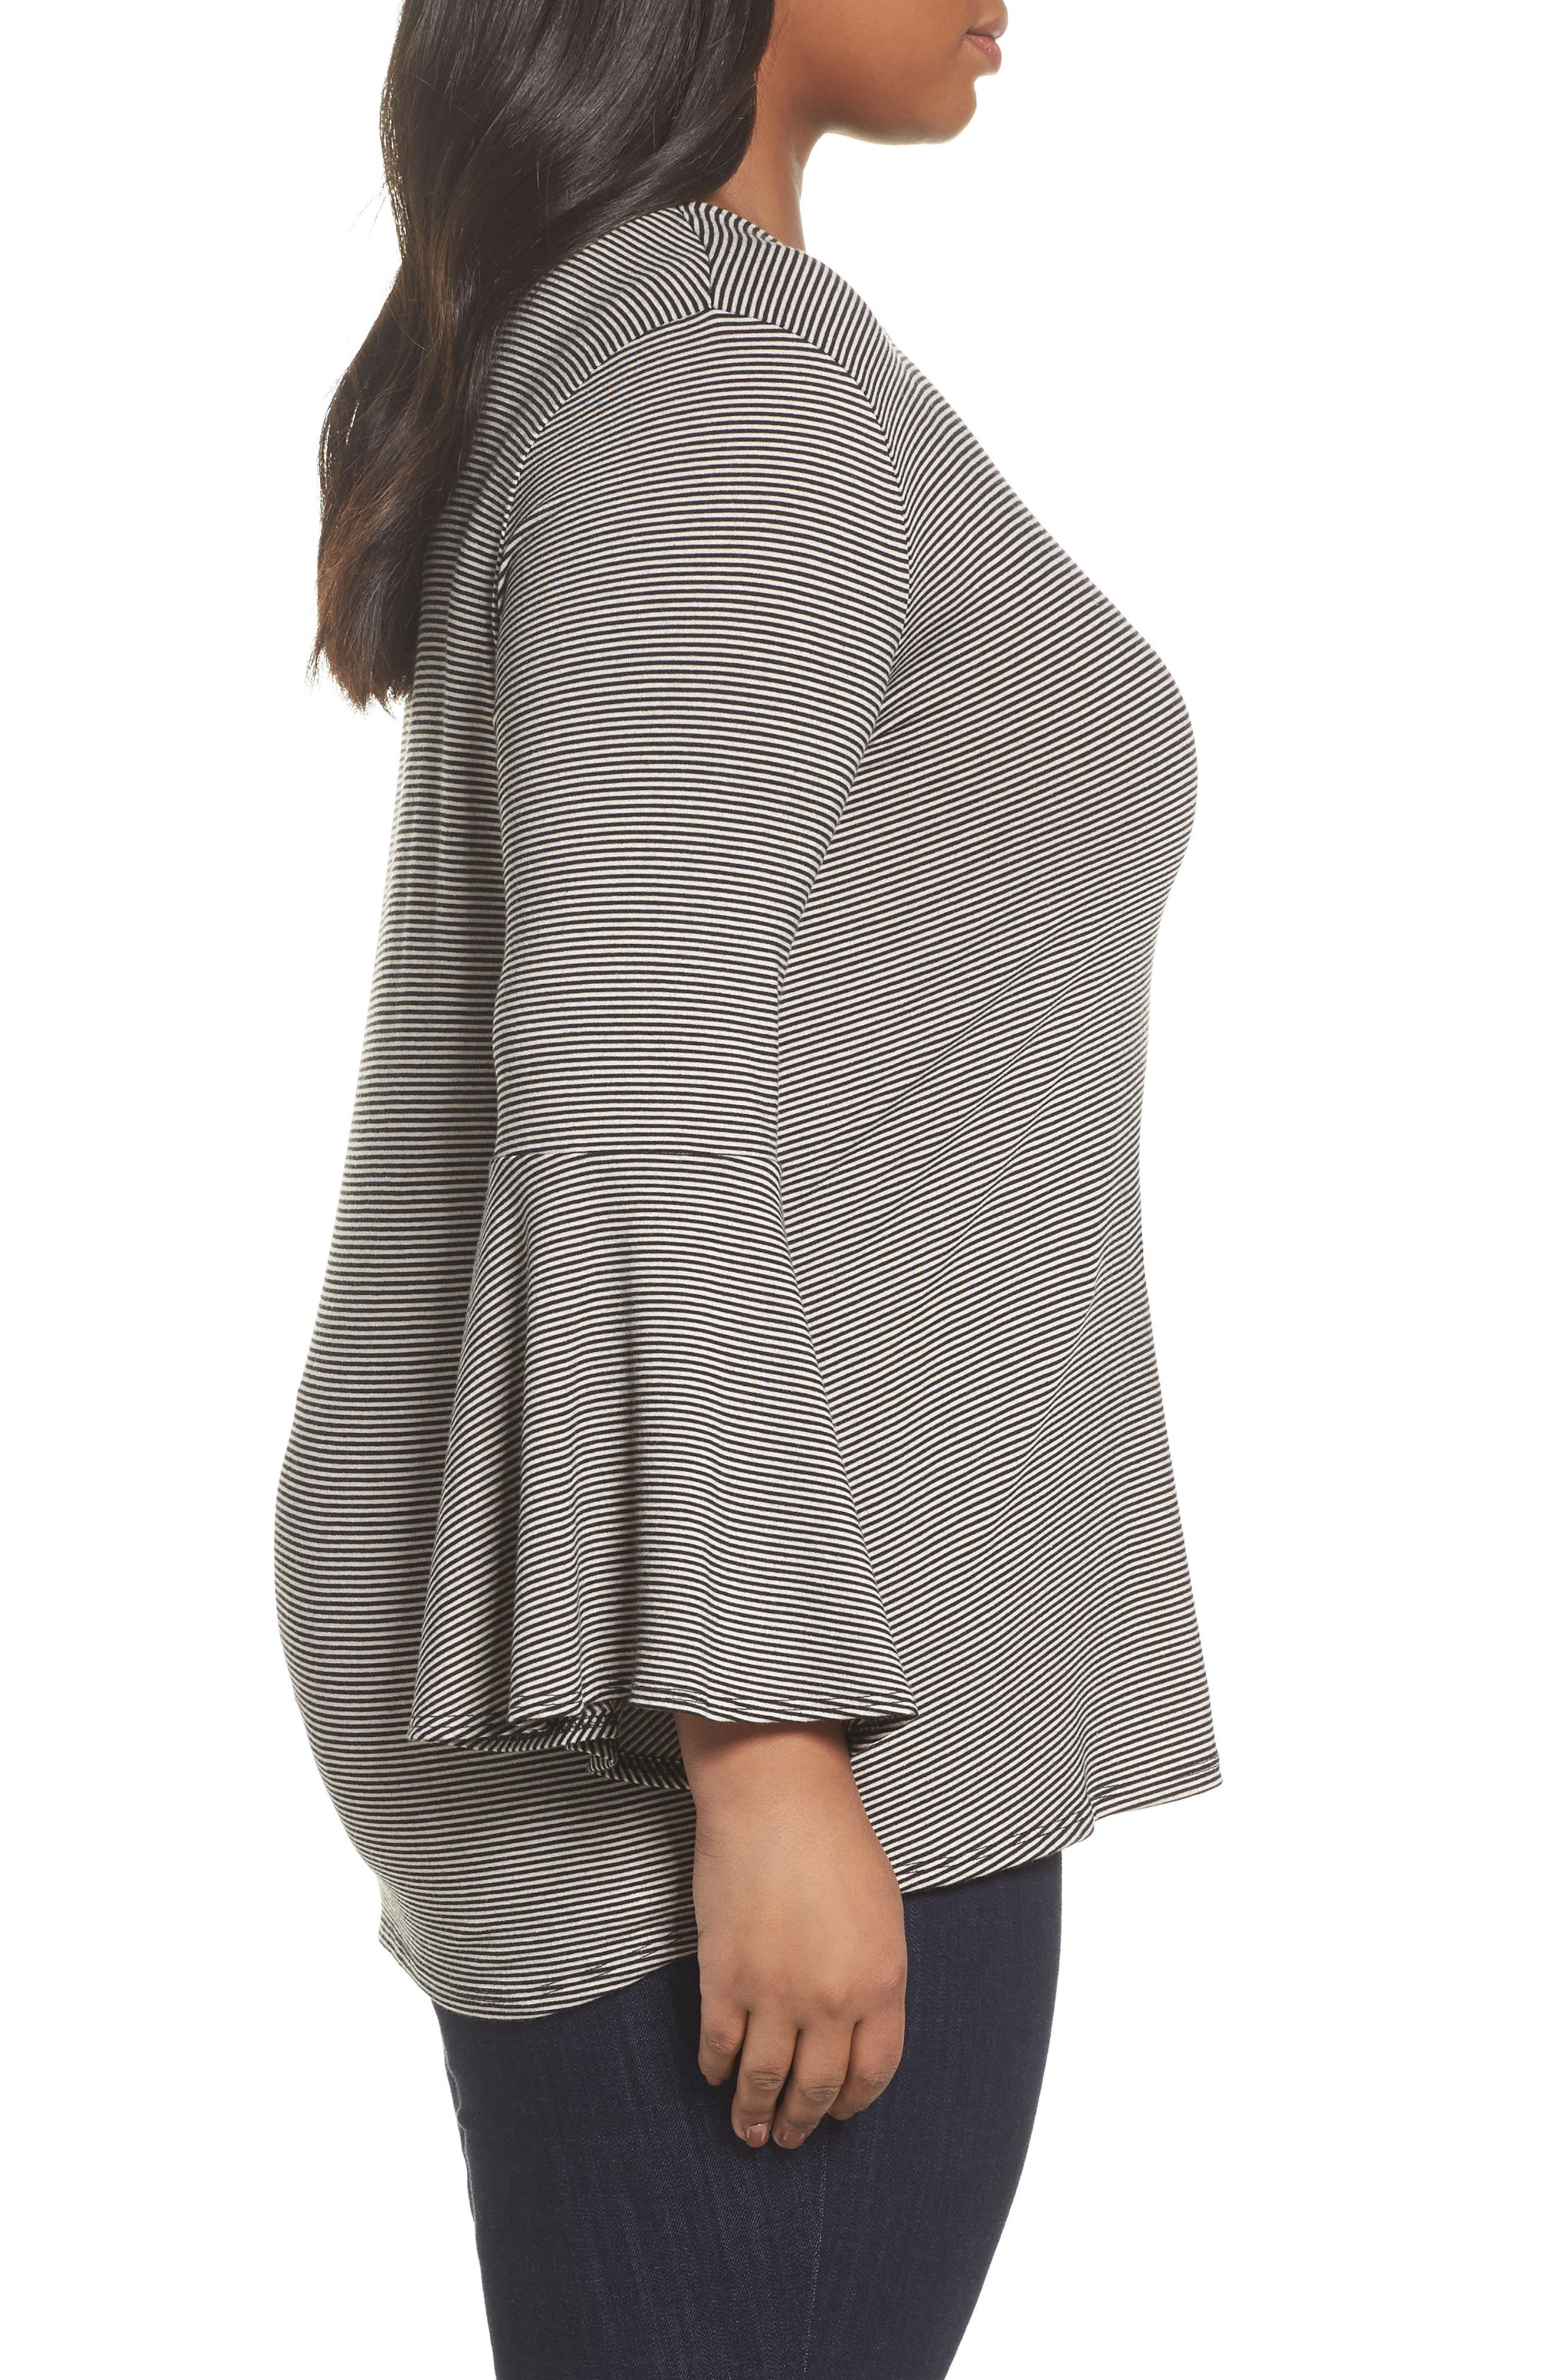 Bell Sleeve Top,                             Alternate thumbnail 3, color,                             Charcoal Heather- Black Stripe